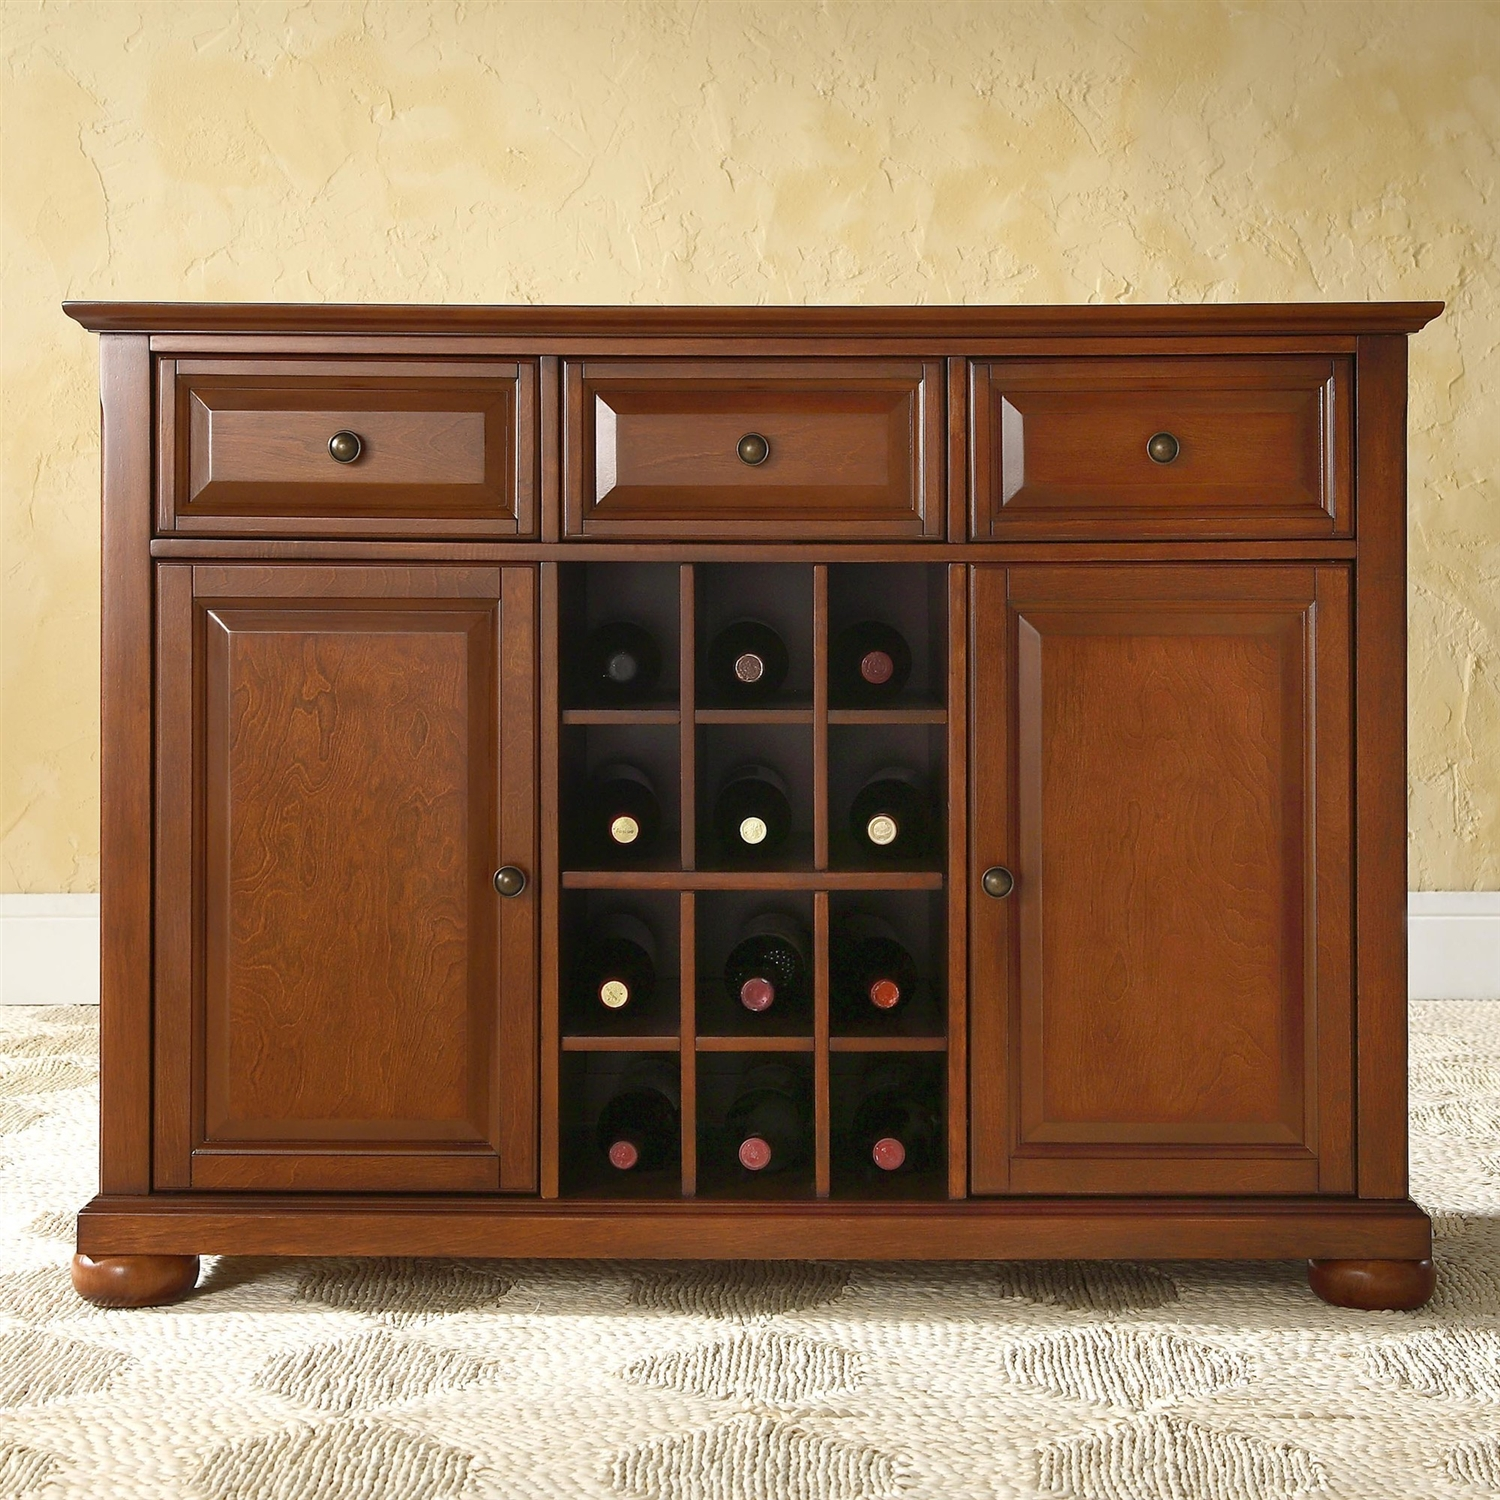 Cherry Wood Dining Room Storage Buffet Cabinet Sideboard with Wine